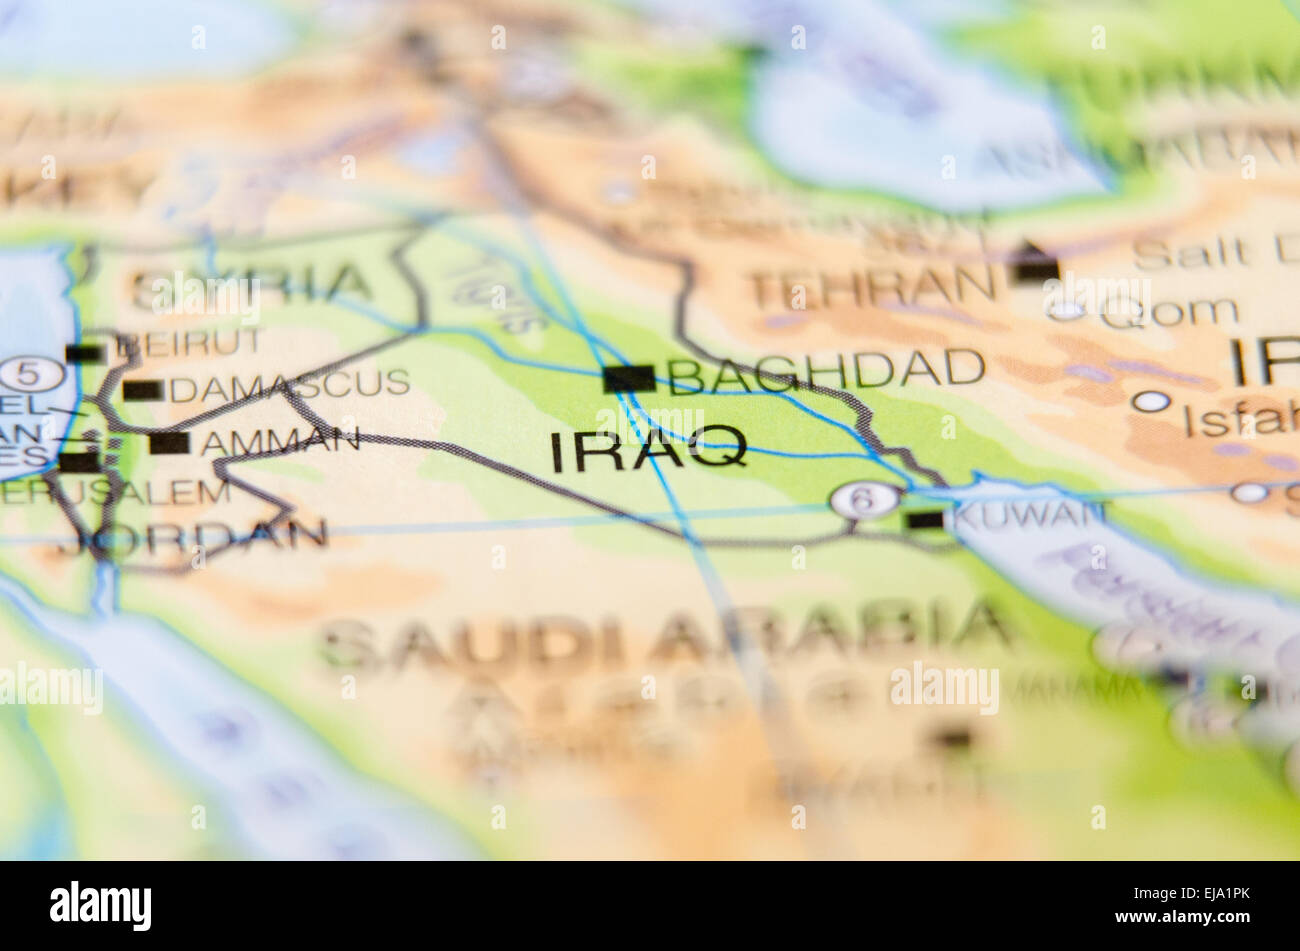 Iraq country on map stock photos iraq country on map stock images iraq country on map stock image gumiabroncs Images